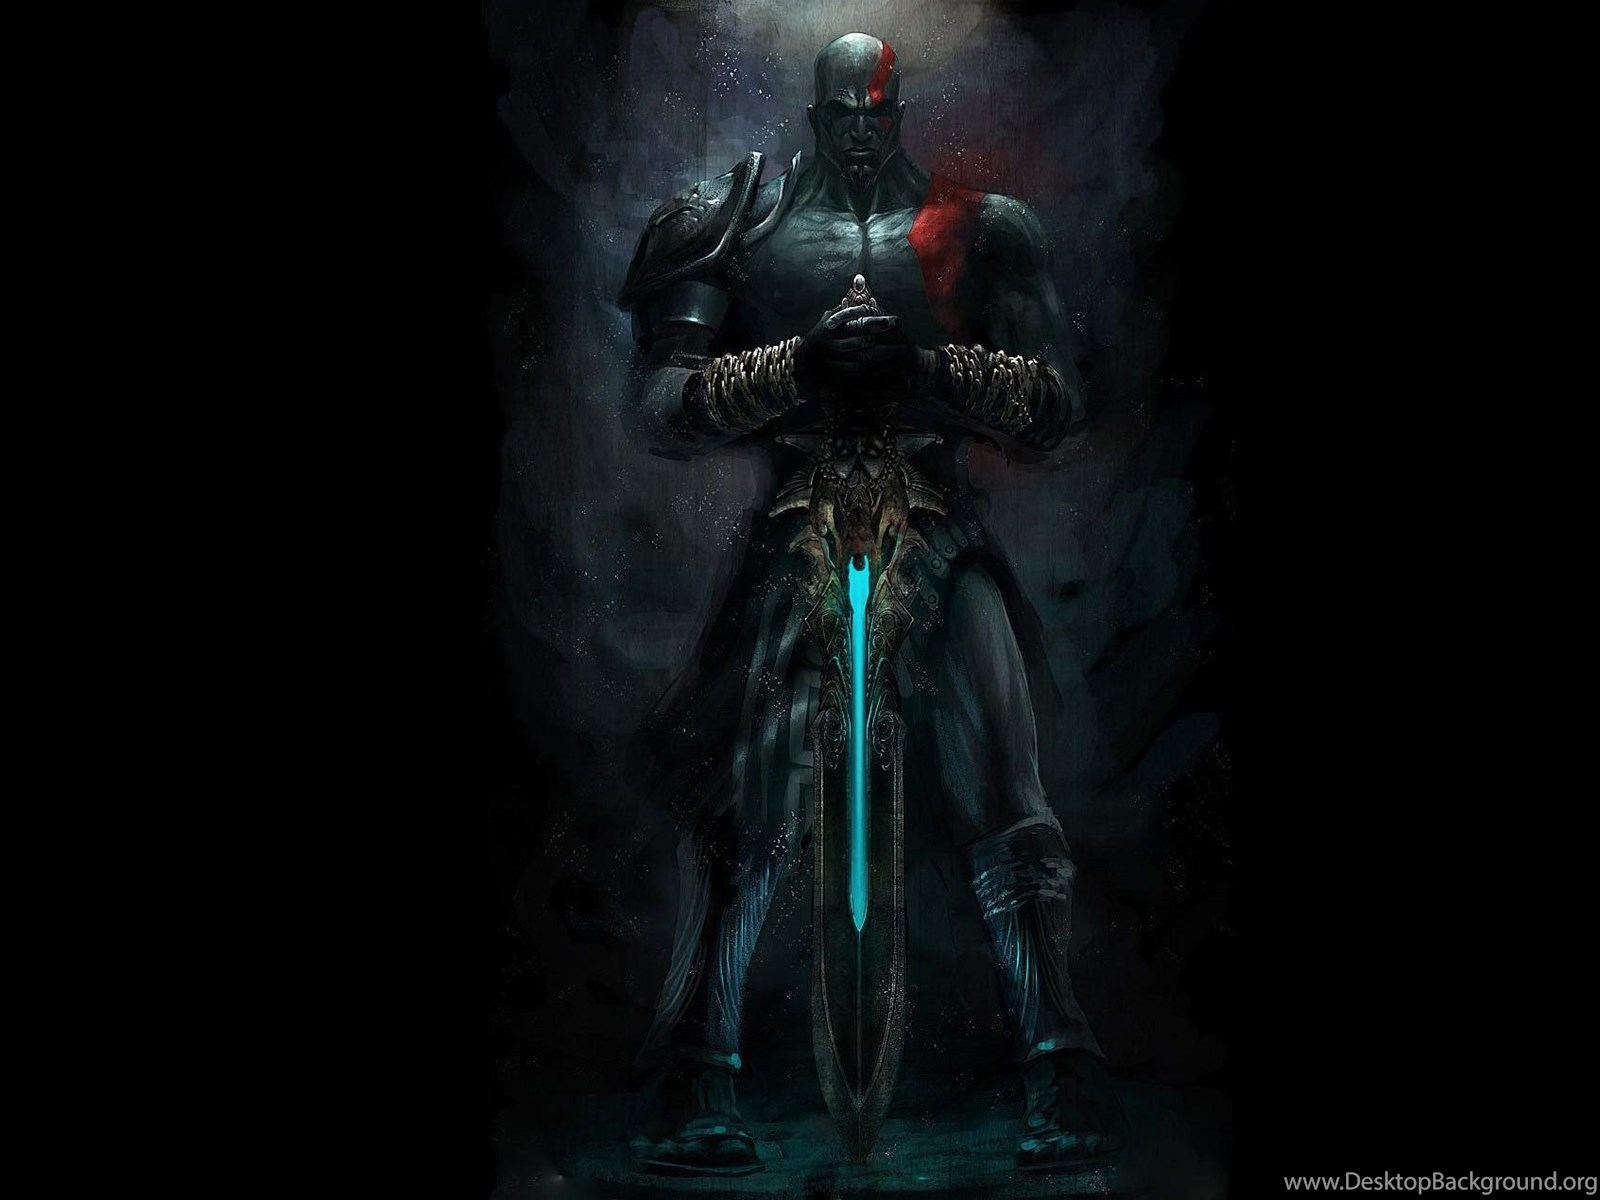 41 God Of War Iii Hd Wallpapers Desktop Background